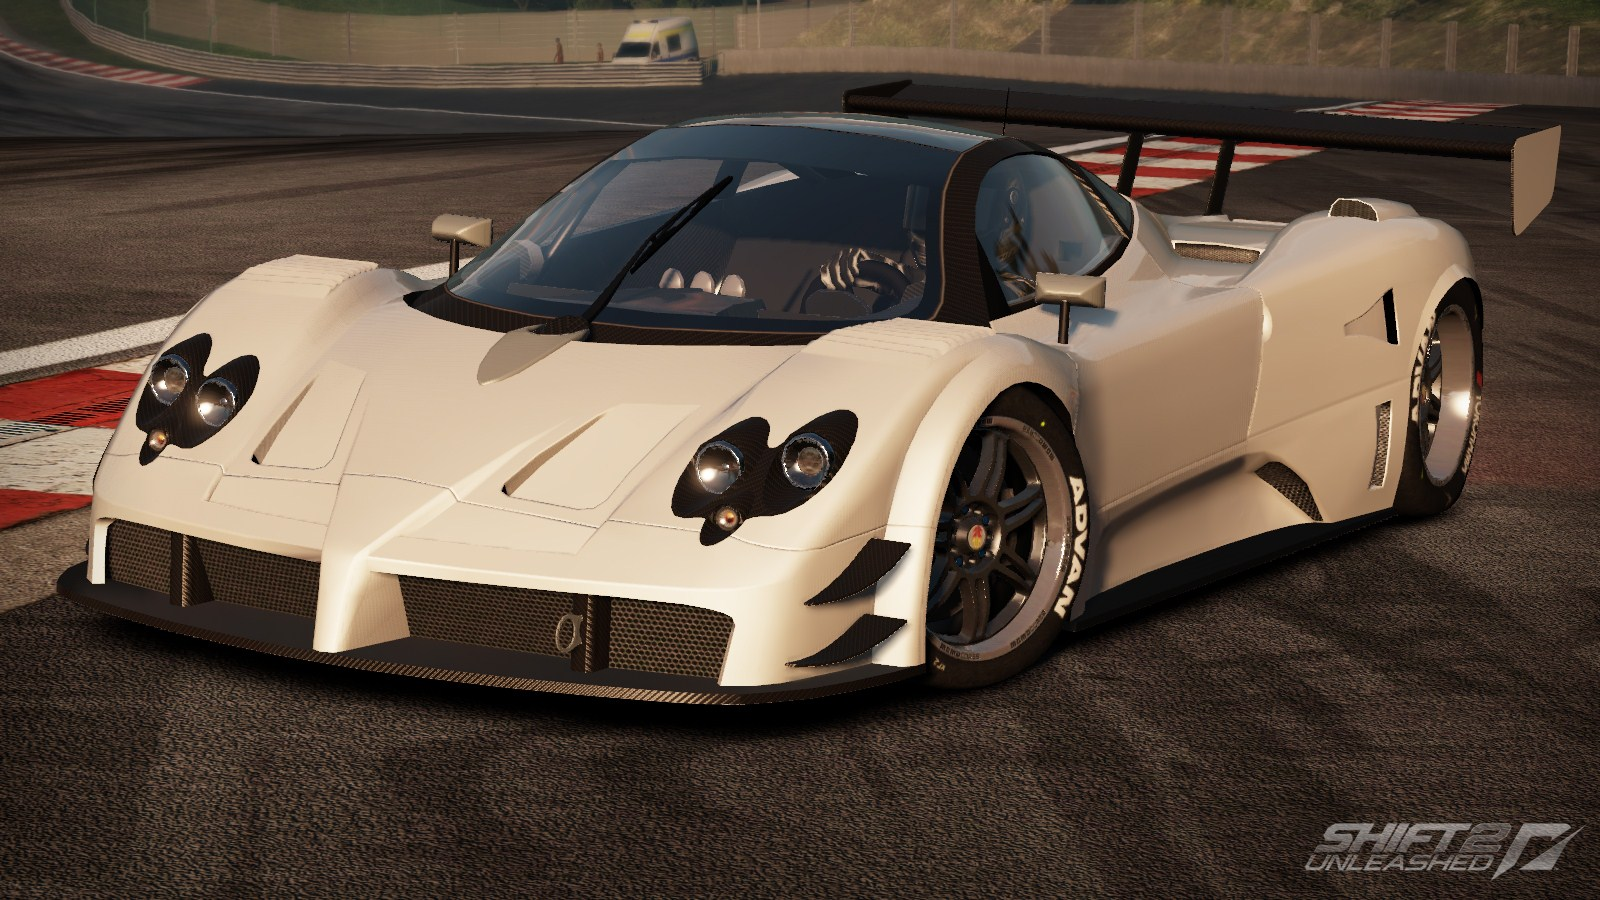 Shift 2: Unleashed - Pagani Zonda F e Pagani Zonda R